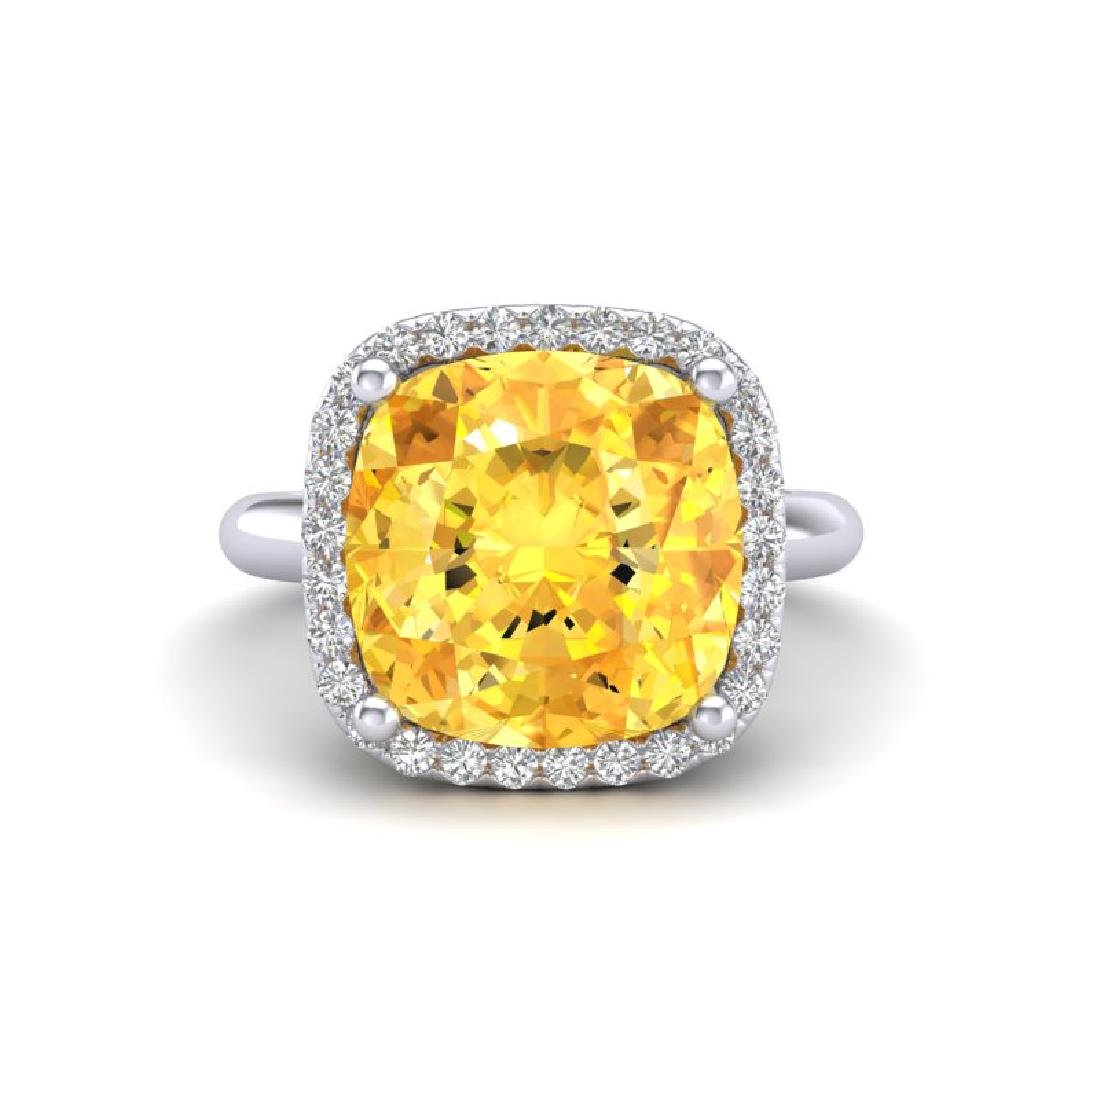 6 CTW Citrine And Micro Pave Halo VS/SI Diamond Ring